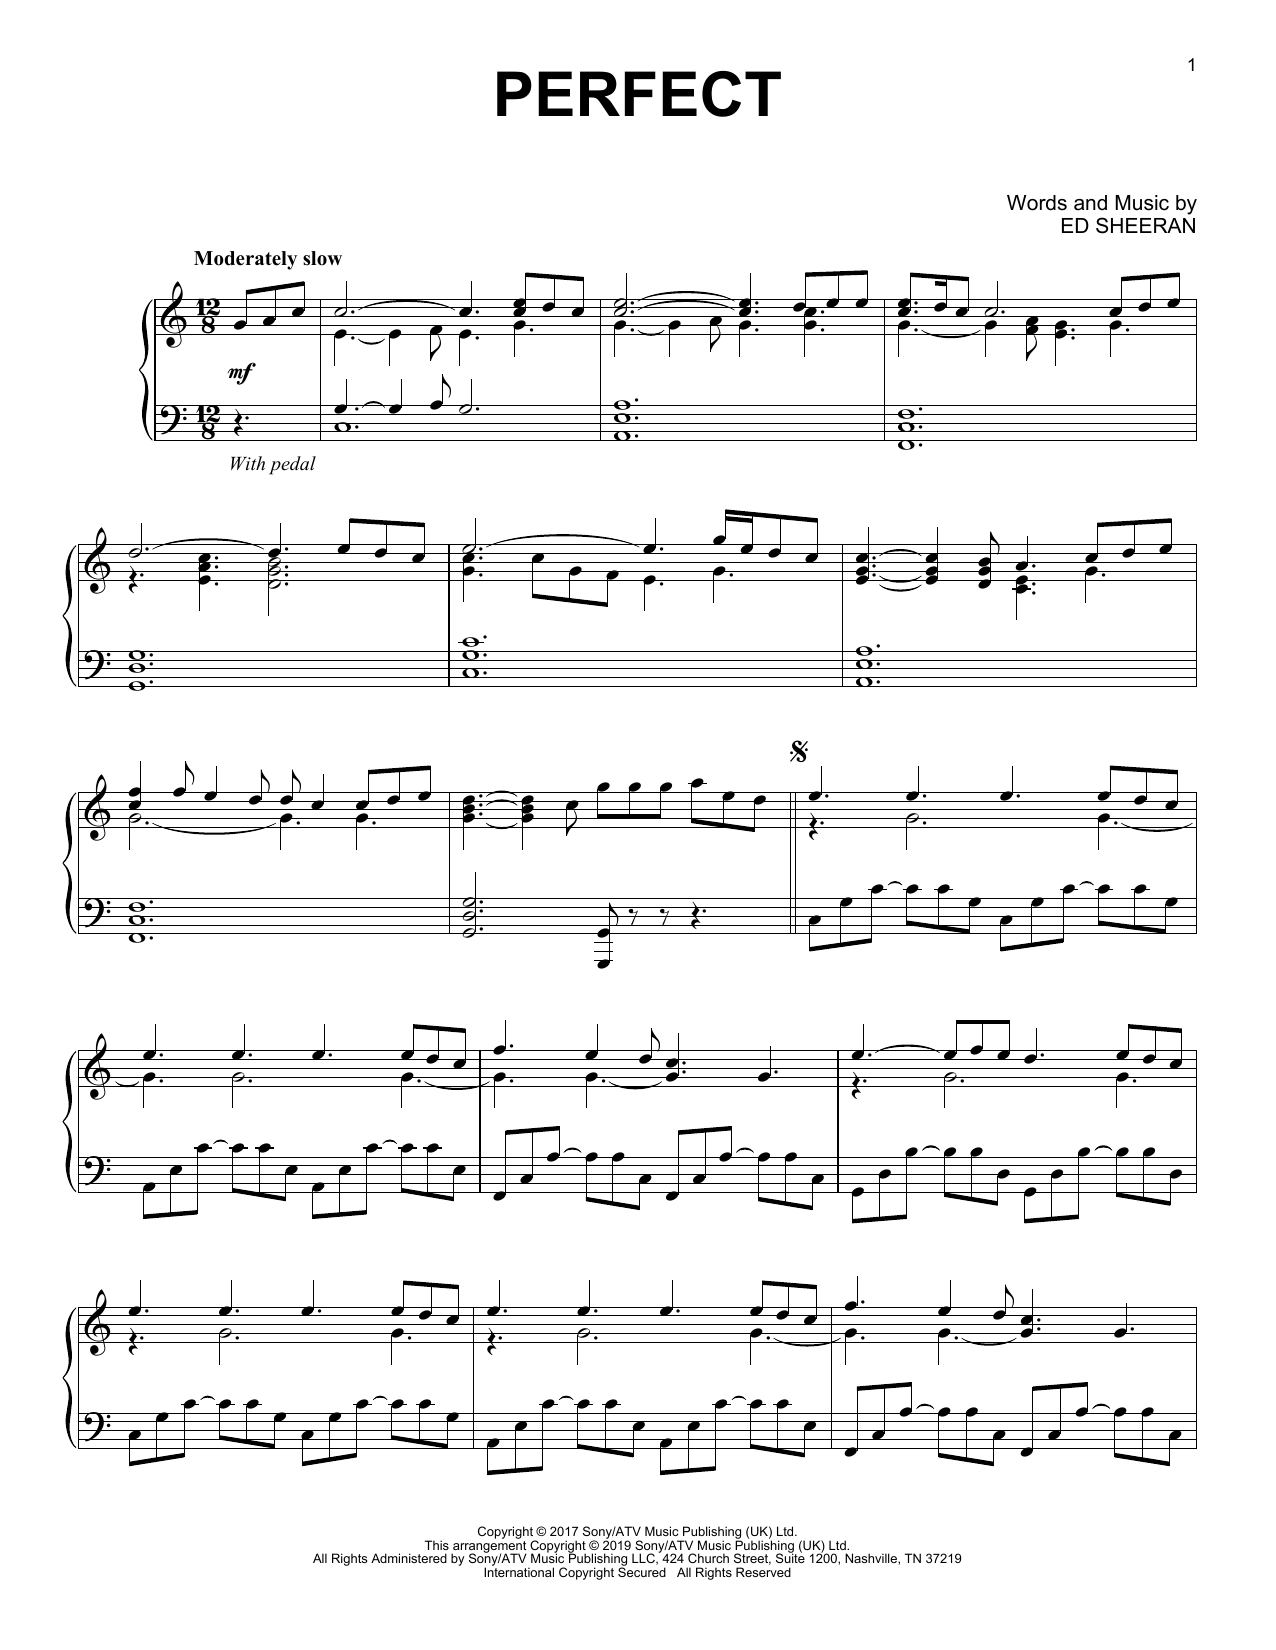 Ed Sheeran Chords Ed Sheeran Perfect Sheet Music Notes Chords Download Printable Piano Solo Sku 415650